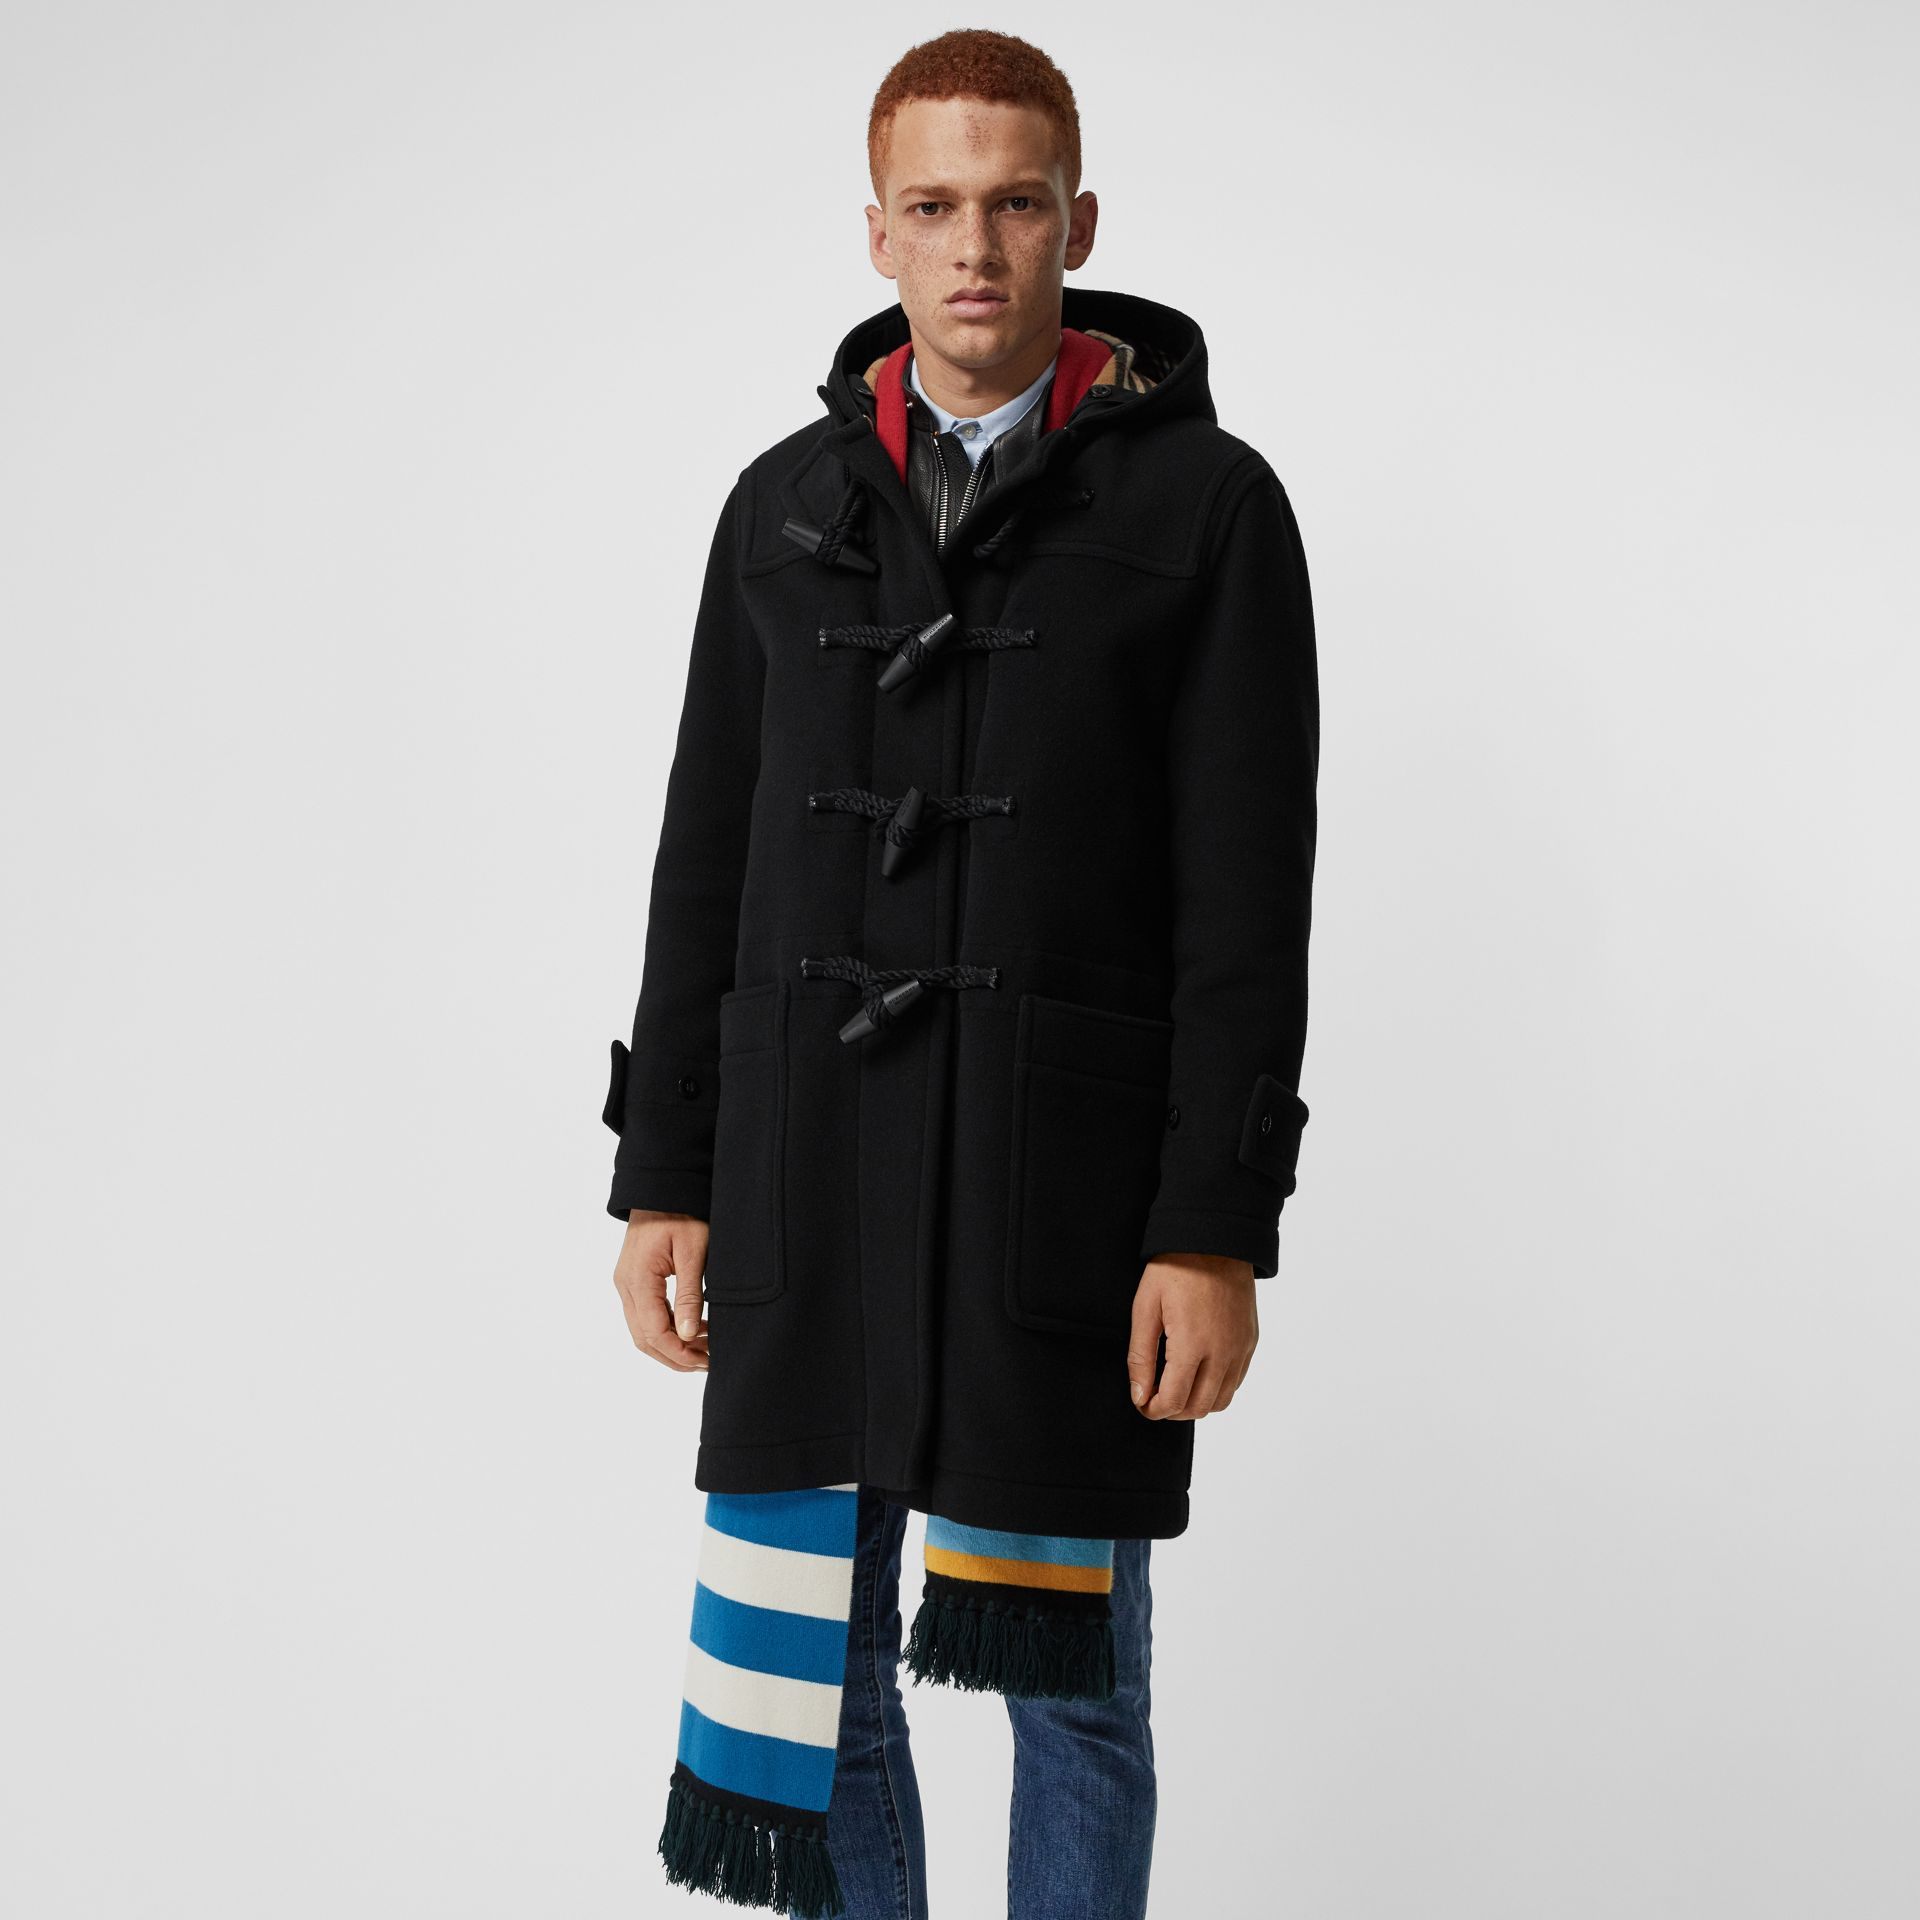 Vintage Check Detail Wool Blend Hooded Duffle Coat in Black - Men | Burberry Canada - gallery image 5